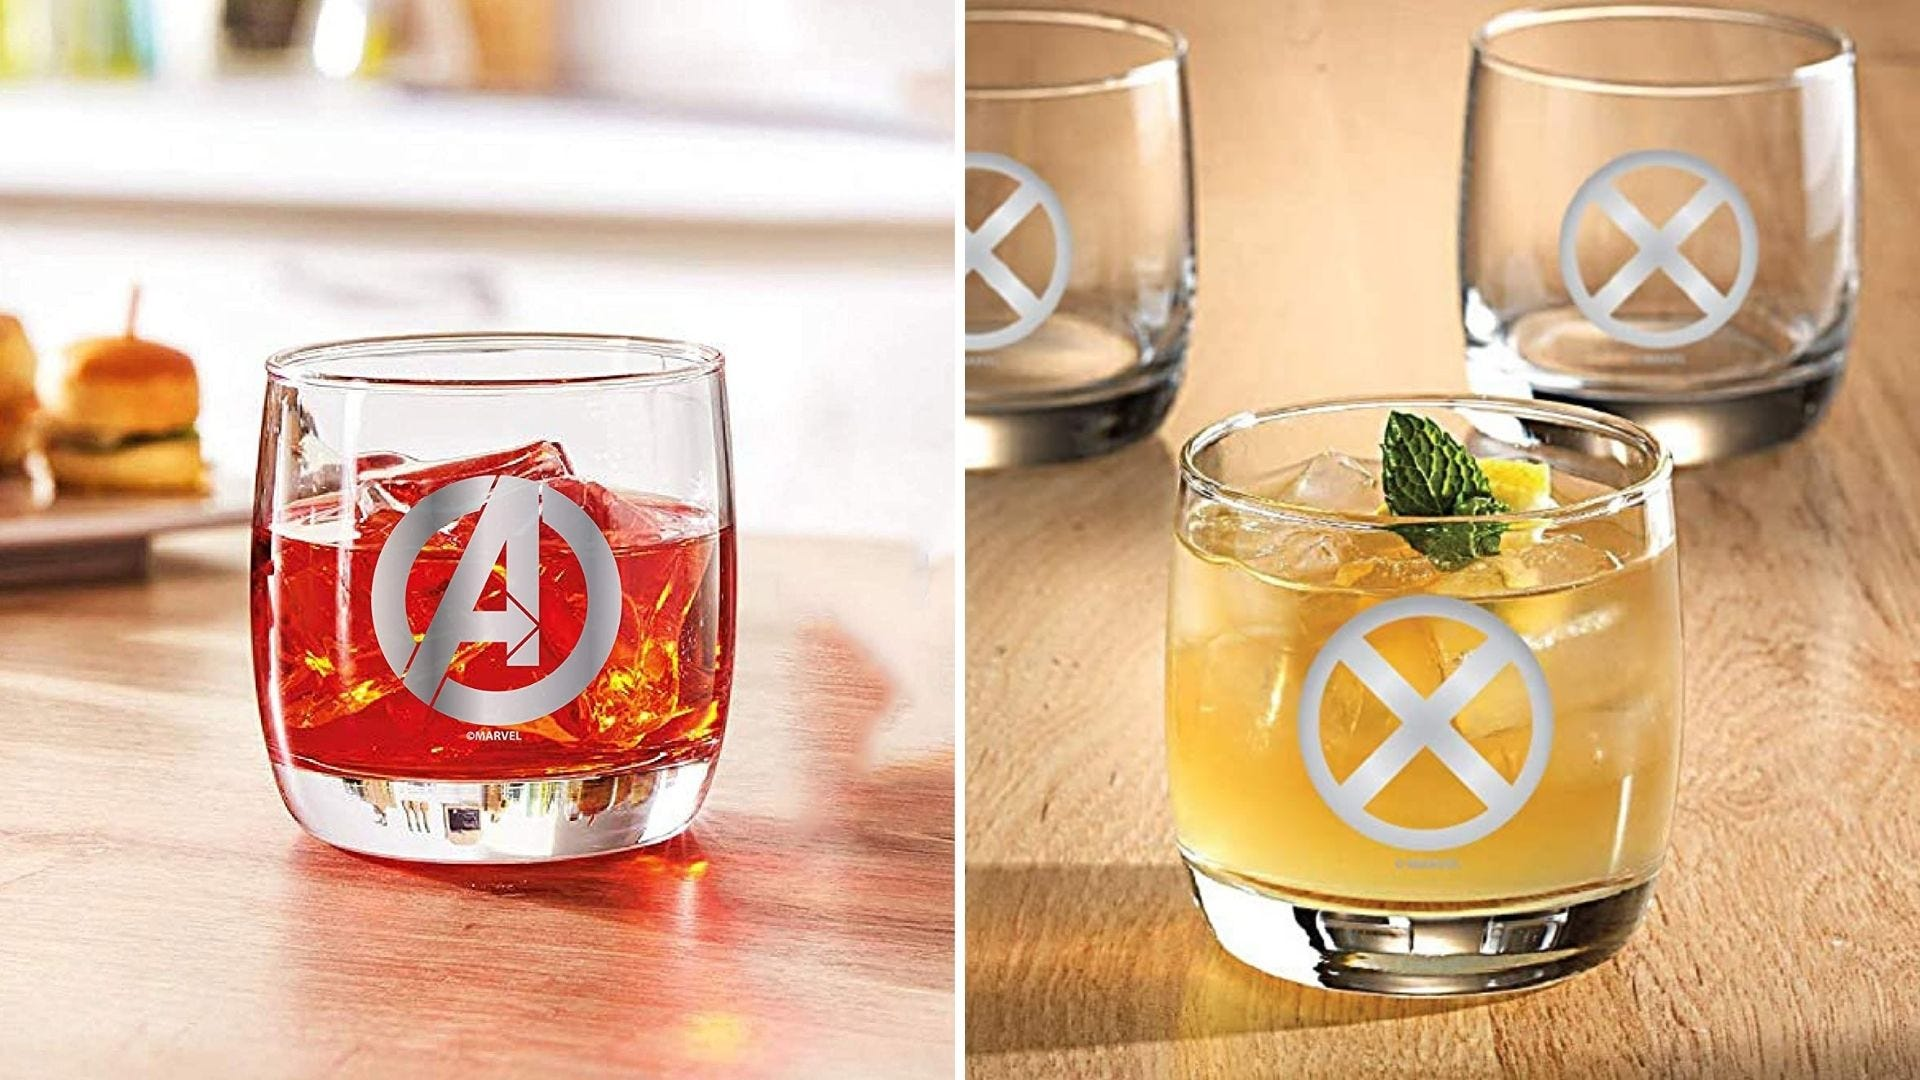 Two glasses with Marvel logos etched on them